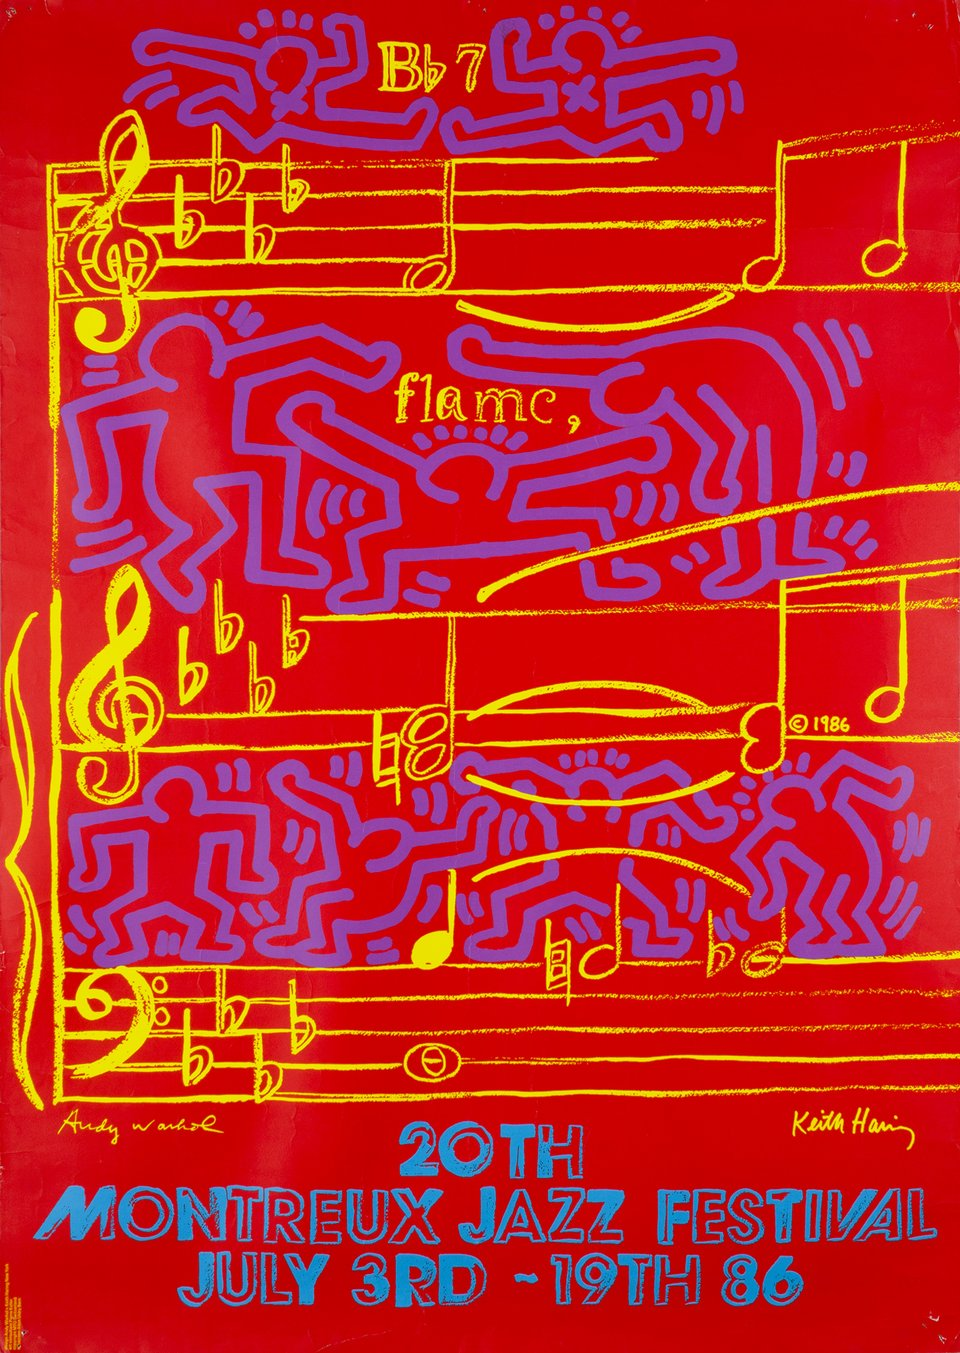 20th Montreux Jazz Festival 1986 – Vintage poster – Keith HARING, Andy WARHOL – 1986